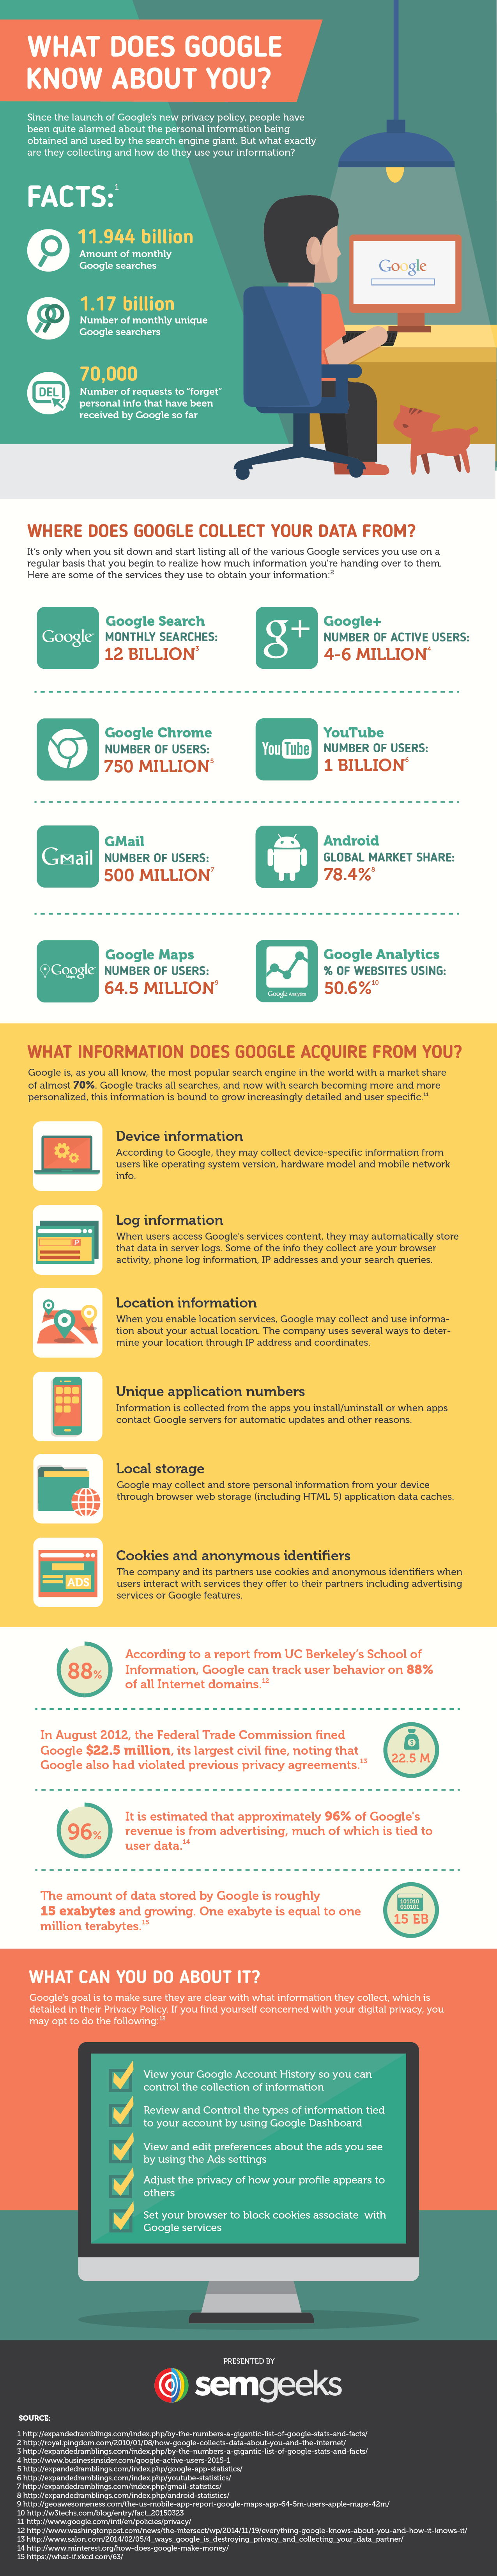 What Types of Information Does Google Collect About Us?